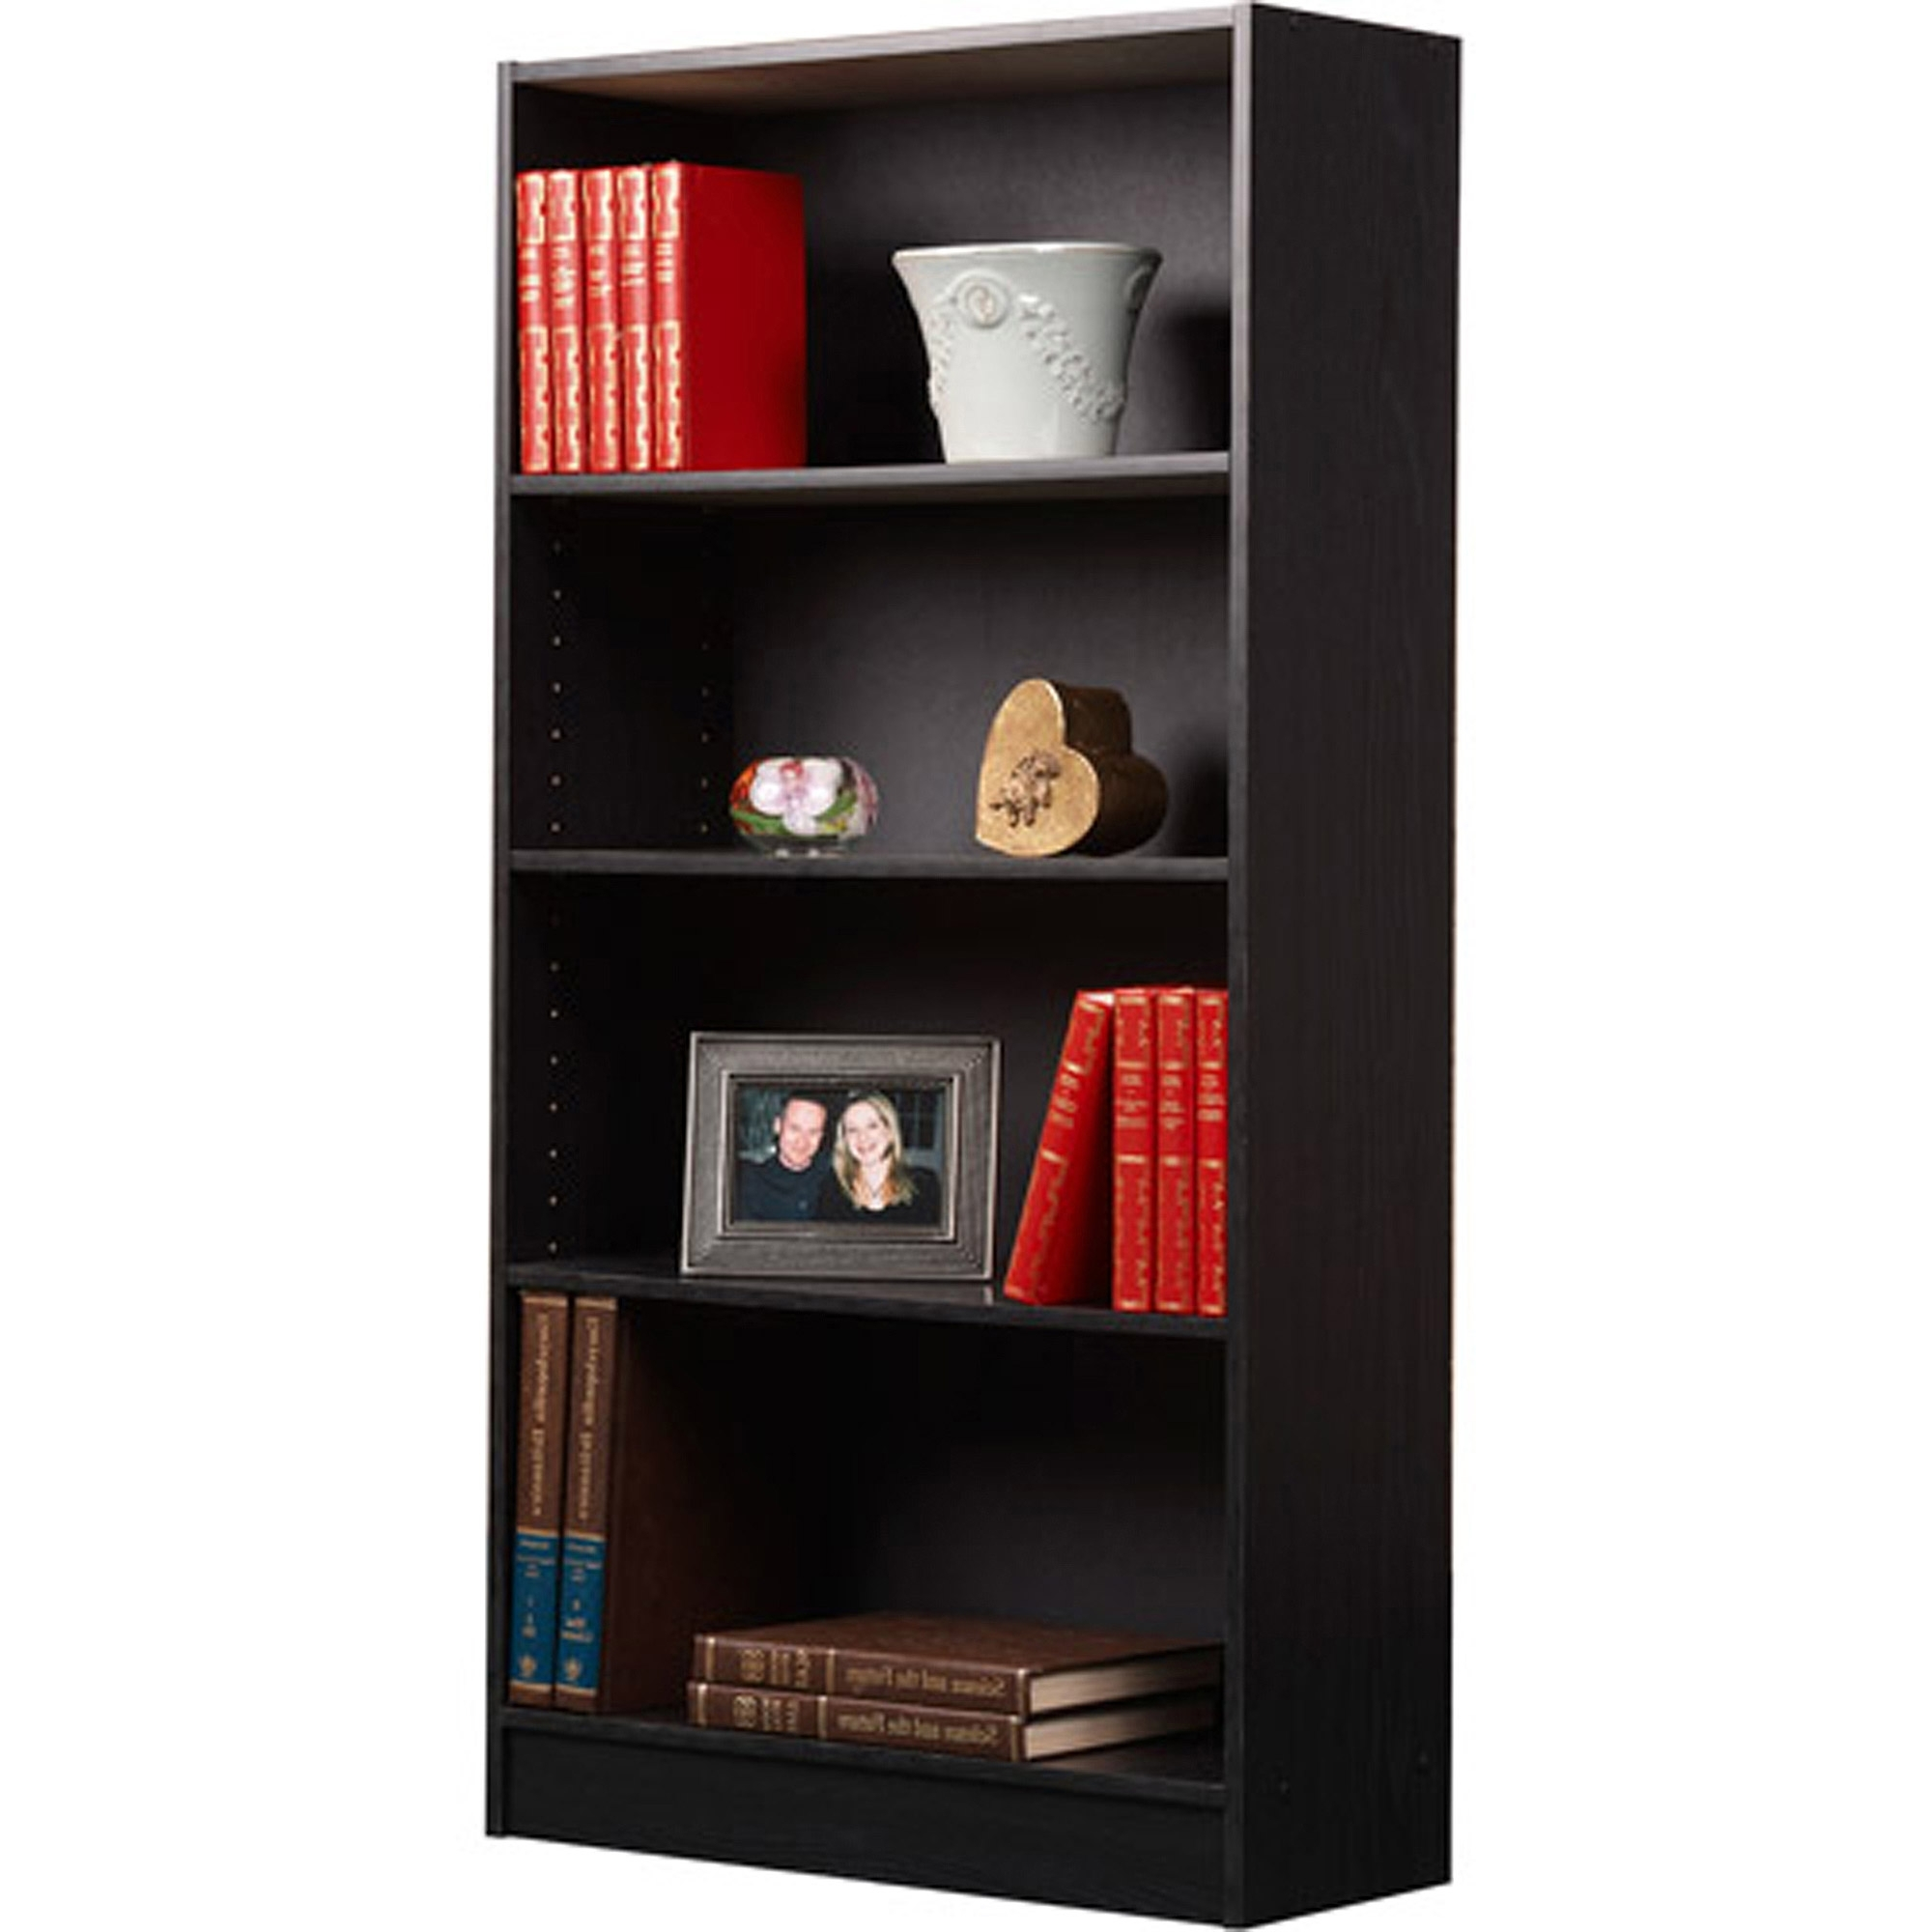 Orion 4 Shelf Bookcases, Set Of 2 – Walmart In Well Known 3 Shelf Bookcases Walmart (View 7 of 15)